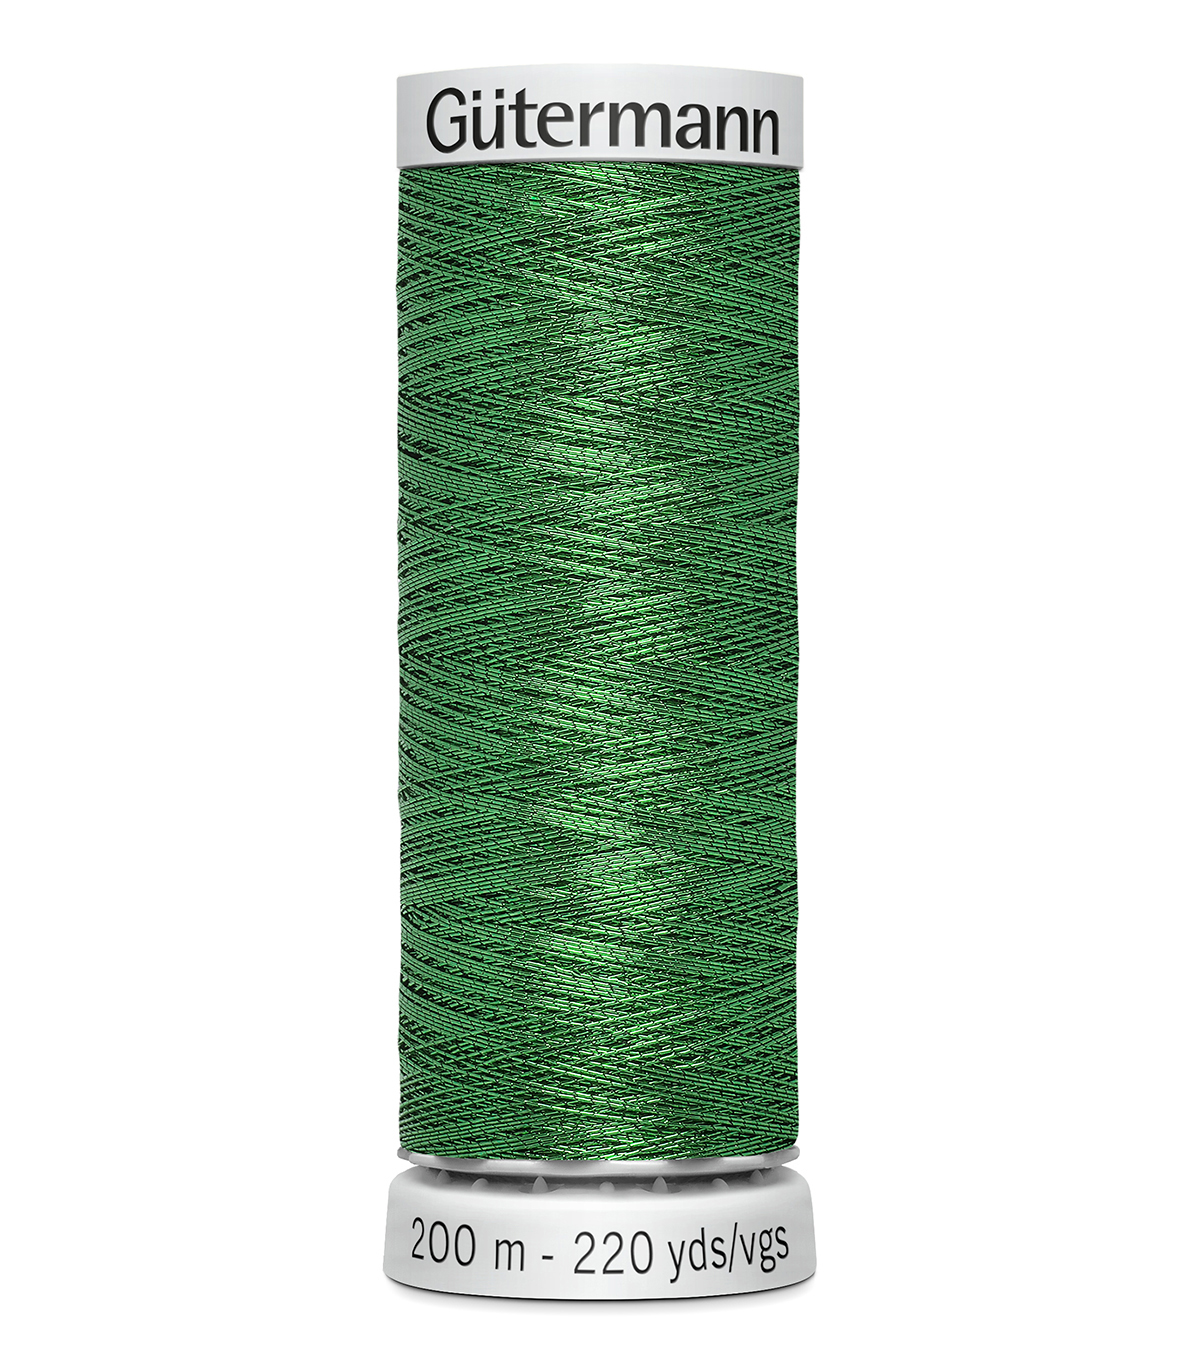 Gutermann 200M Dekor Thread, 200m Dekor Metallic-christmas